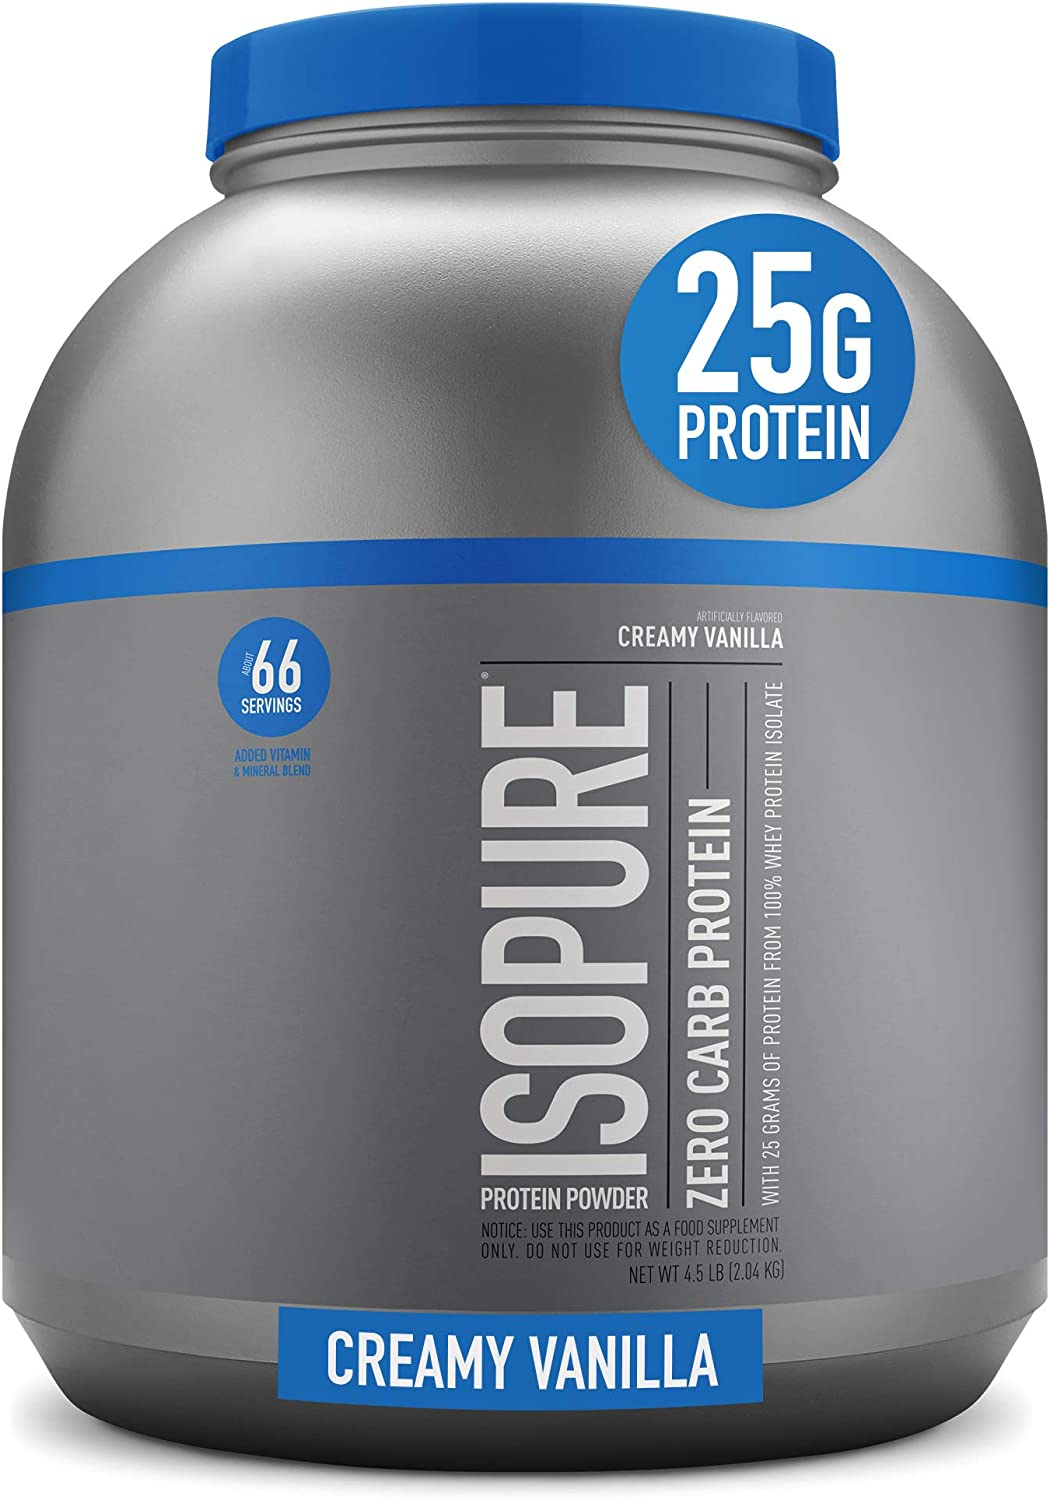 Isopure Zero Carb, Vitamin C and Zinc for Immune Support, 25g Protein, Keto Friendly Protein Powder, 100% Whey Protein Isolate, Flavor: Creamy Vanilla, 4.5 Pounds (Packaging May Vary)